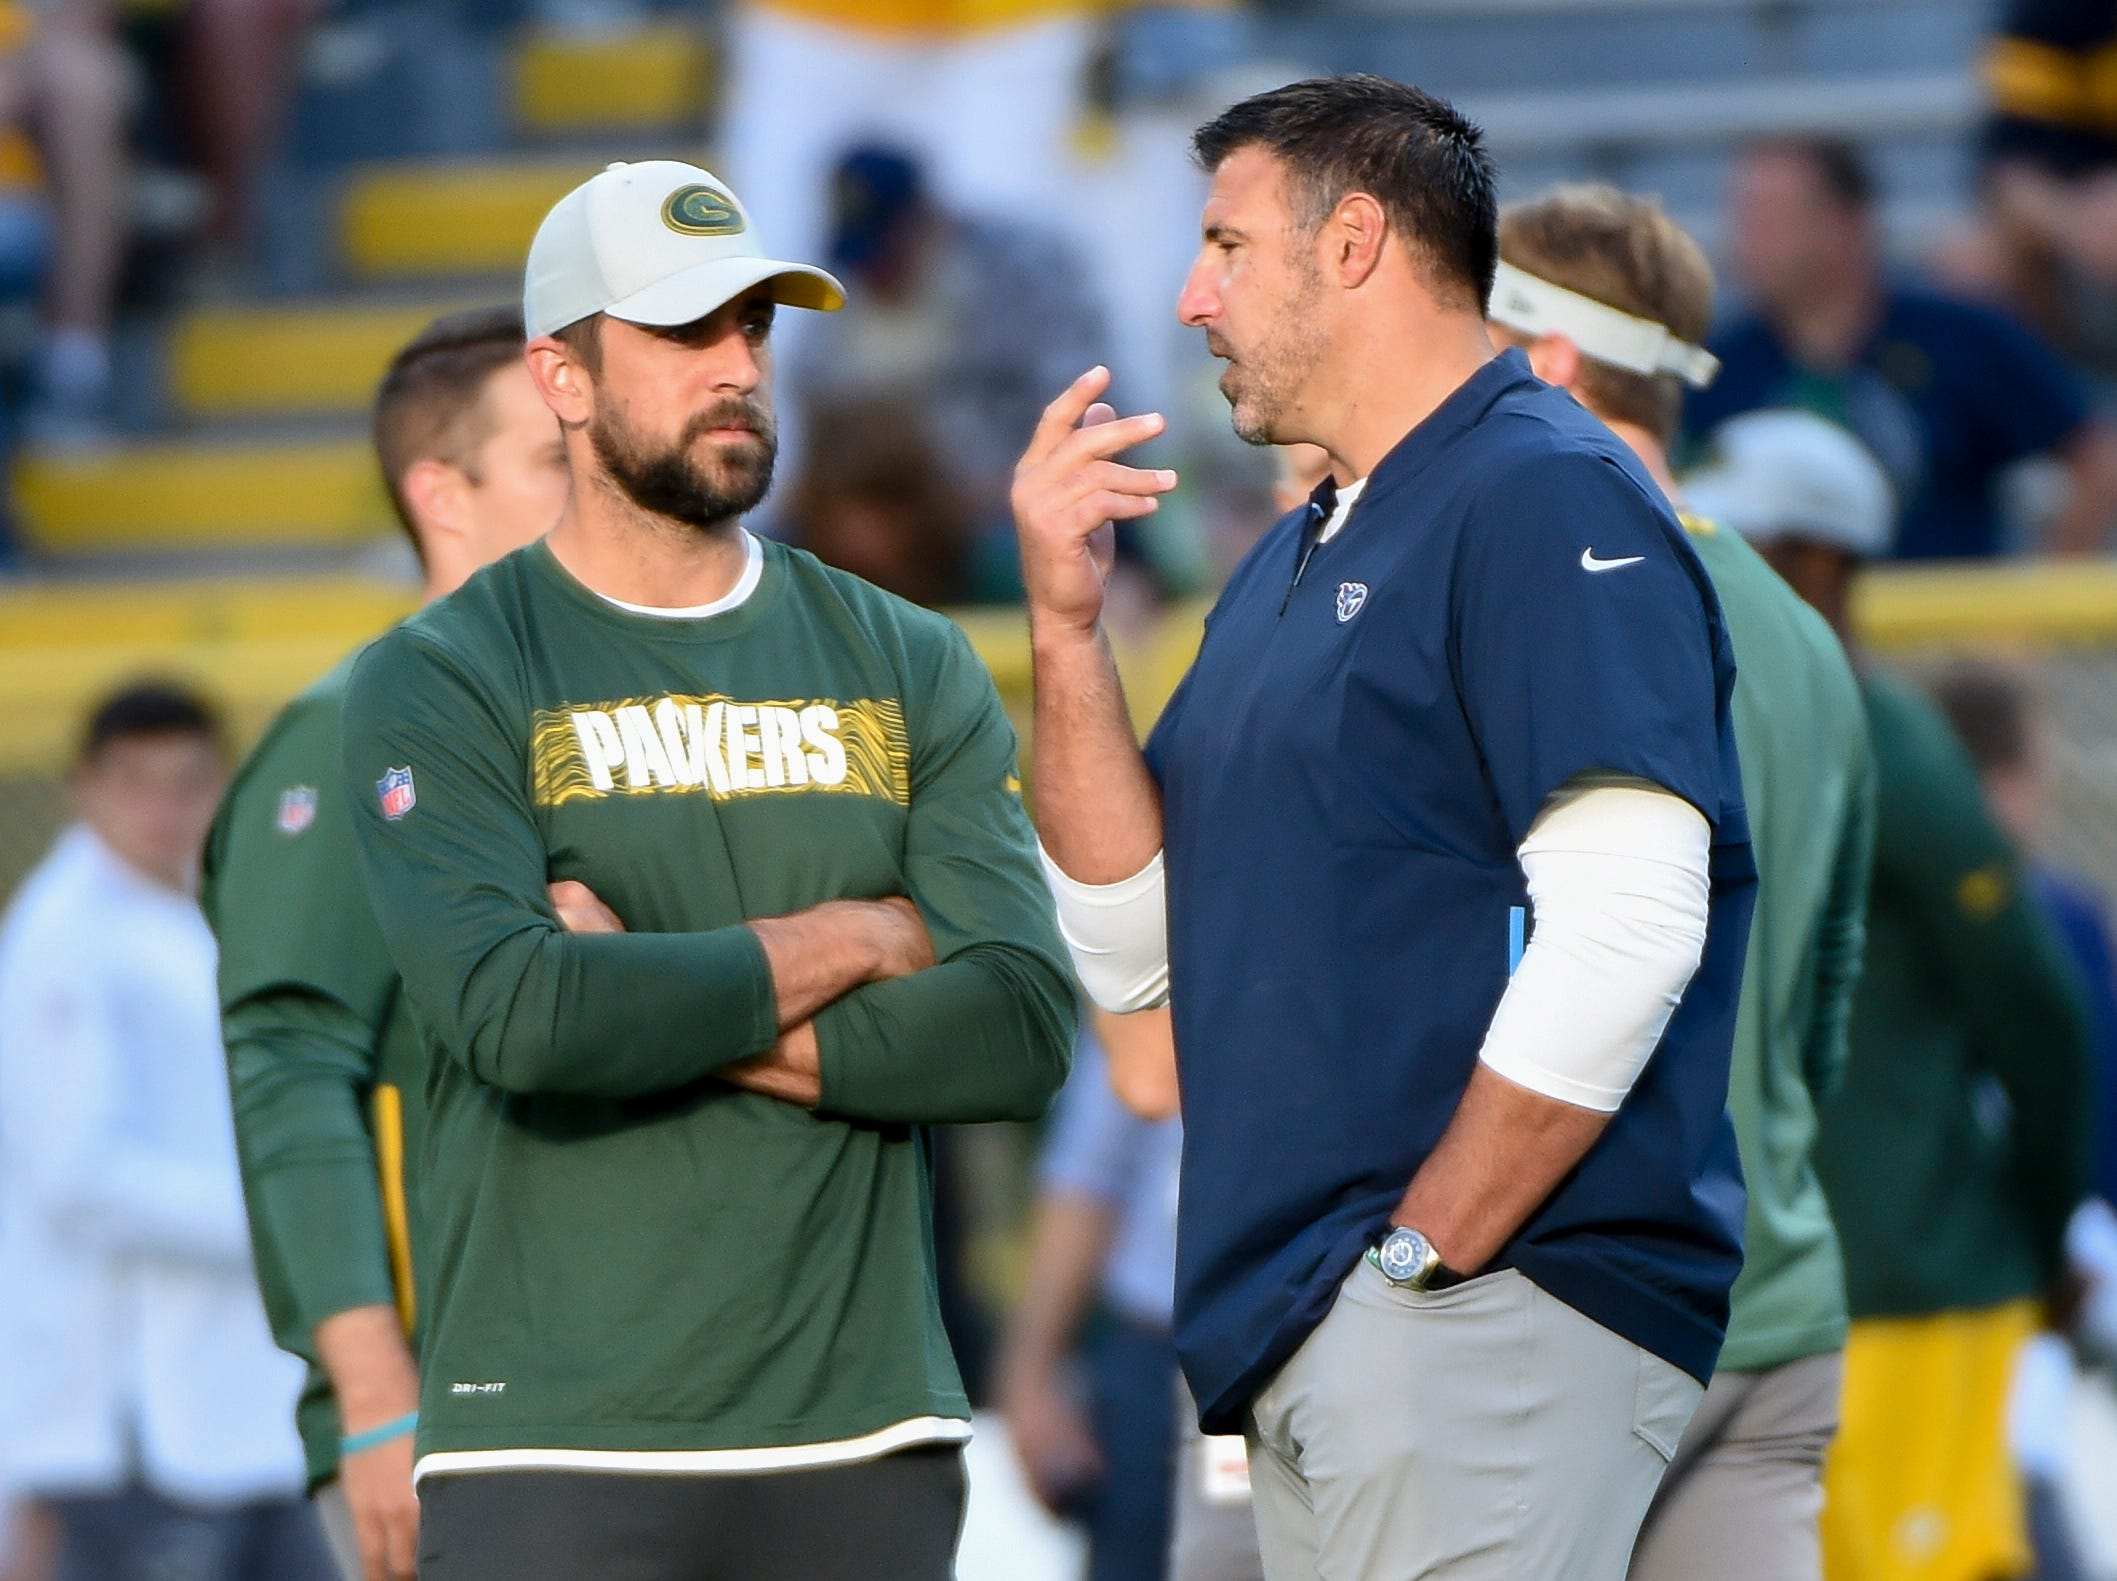 Aug 9, 2018; Green Bay, WI, USA;  Green Bay Packers quarterback Aaron Rodgers (12) talks to Tennessee Titans head coach Mike Vrabel before the game at Lambeau Field. Mandatory Credit: Benny Sieu-USA TODAY Sports